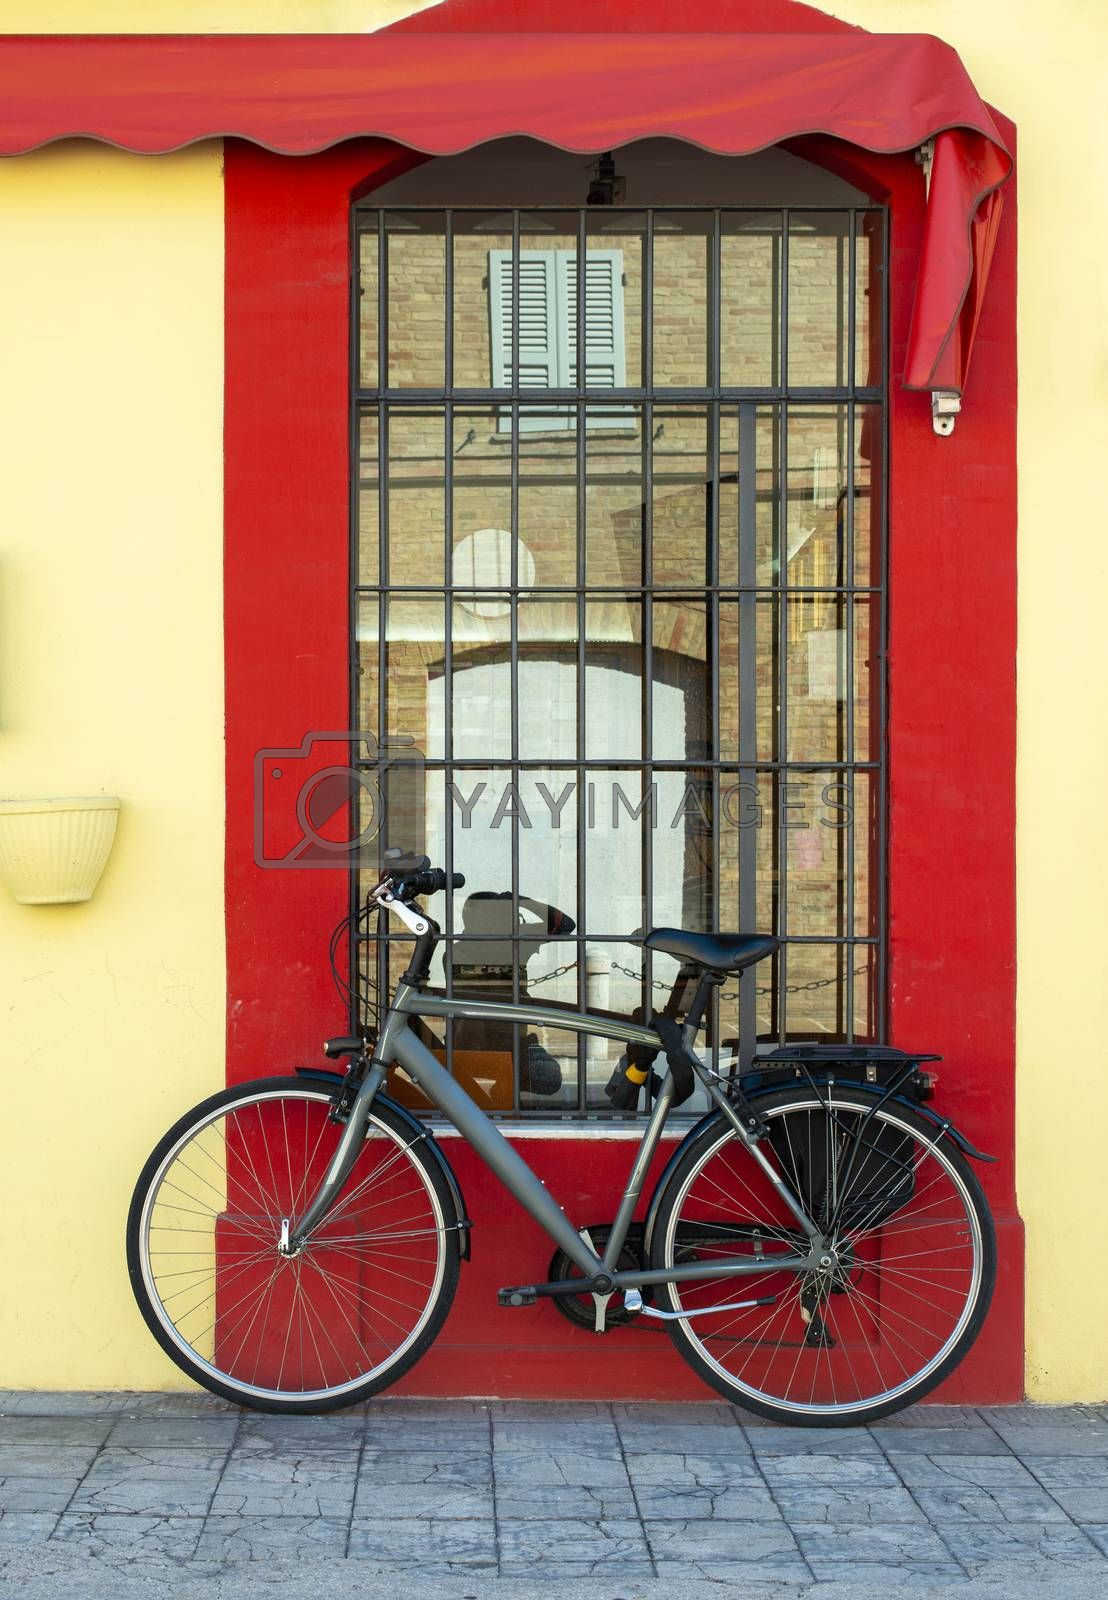 Grey bike in front of yellow facade and red window. Bicycle with trunk. Reflection of old building in the window. Window with grille.